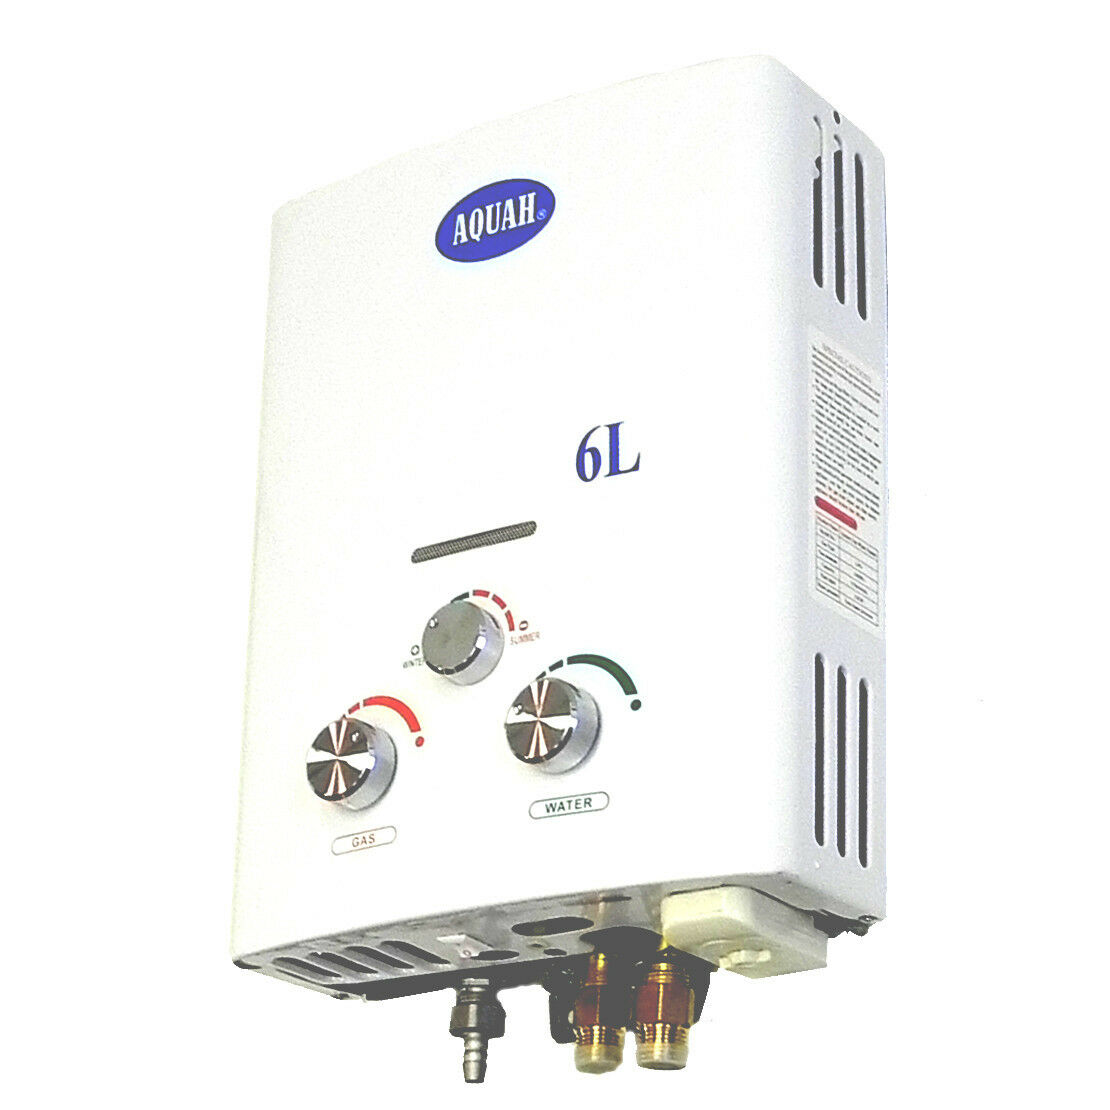 Instant Water Heater Rv : Aquah outdoor portable propane tankless gas water heater